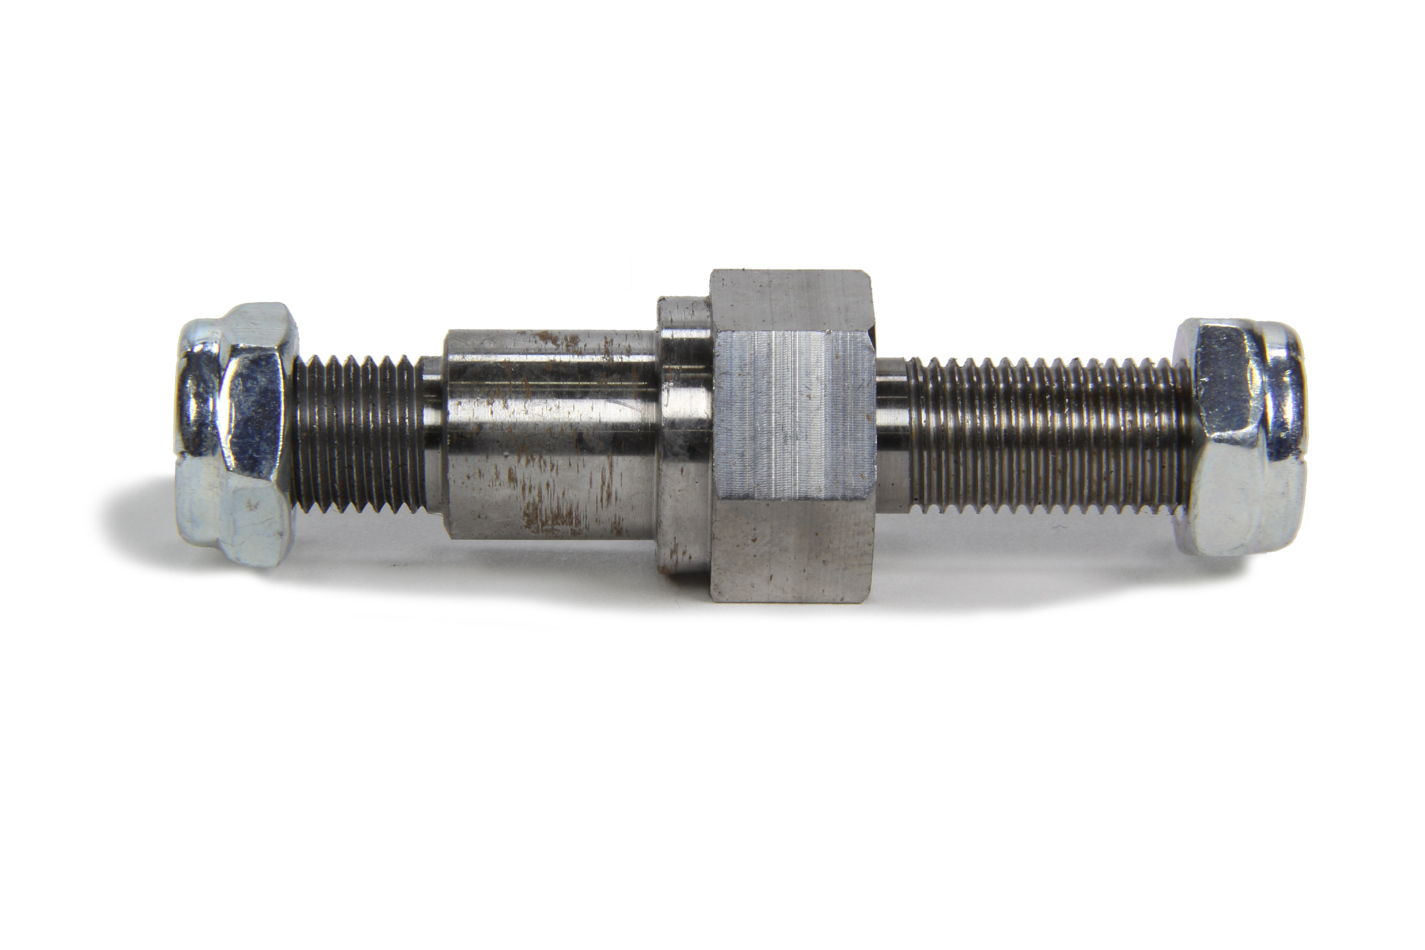 Ti22 Performance 3640 Shock Mount Stud, 3/8 in Thread, 2-1/2 in Long, Hex Nuts, Steel, Natural, Mini Sprint, Each